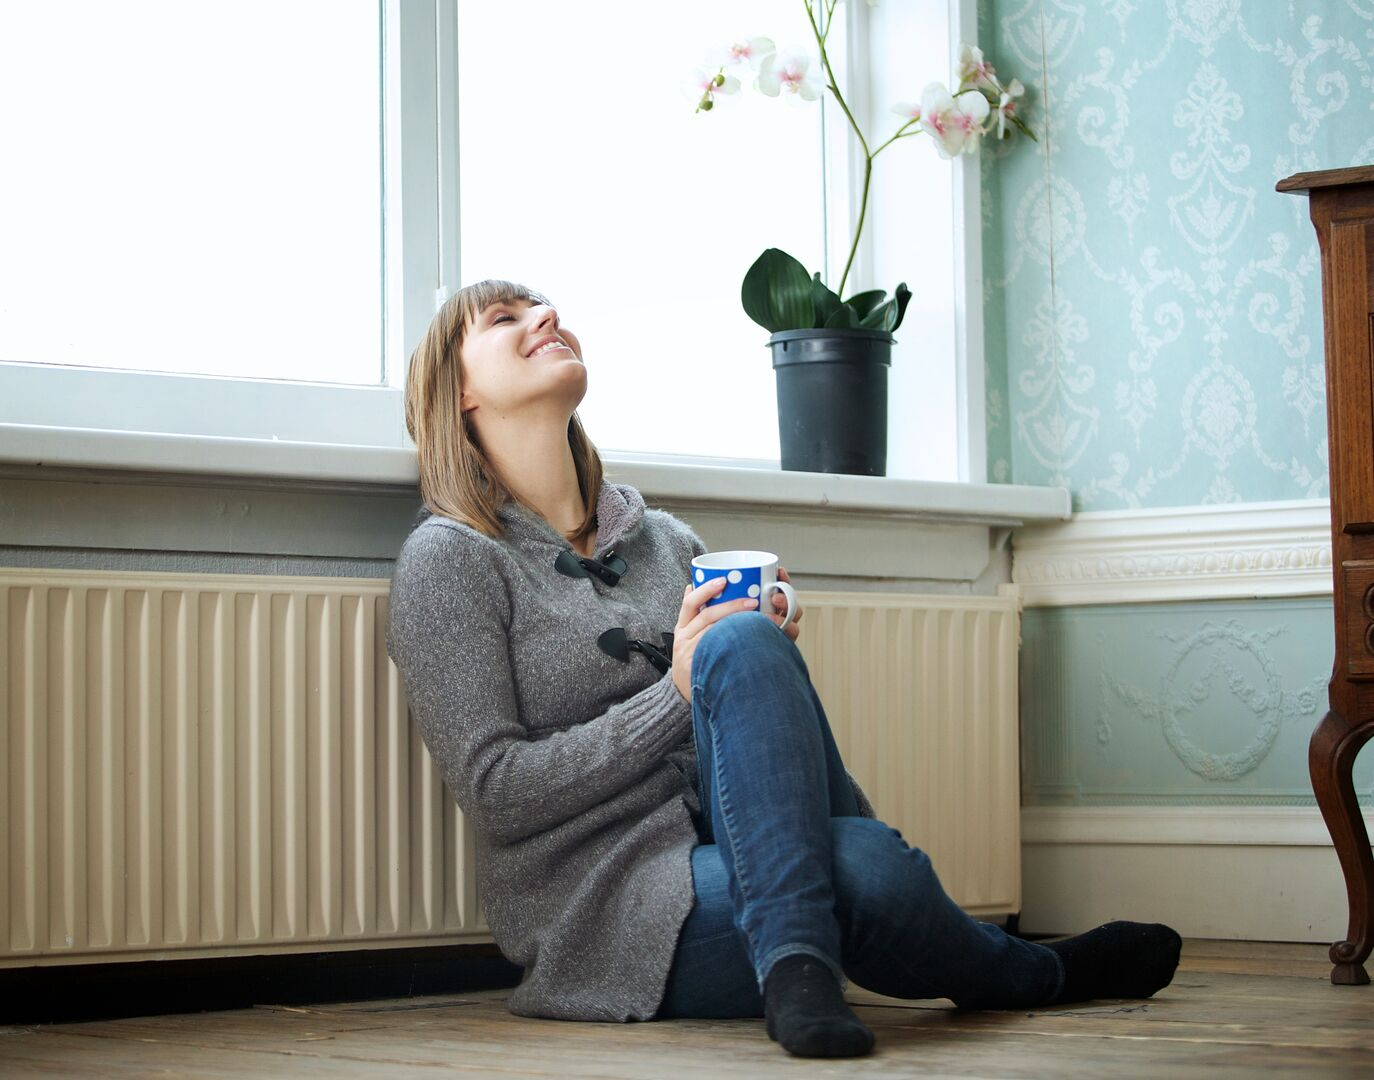 Lady sitting on the floor leaning back on a radiator